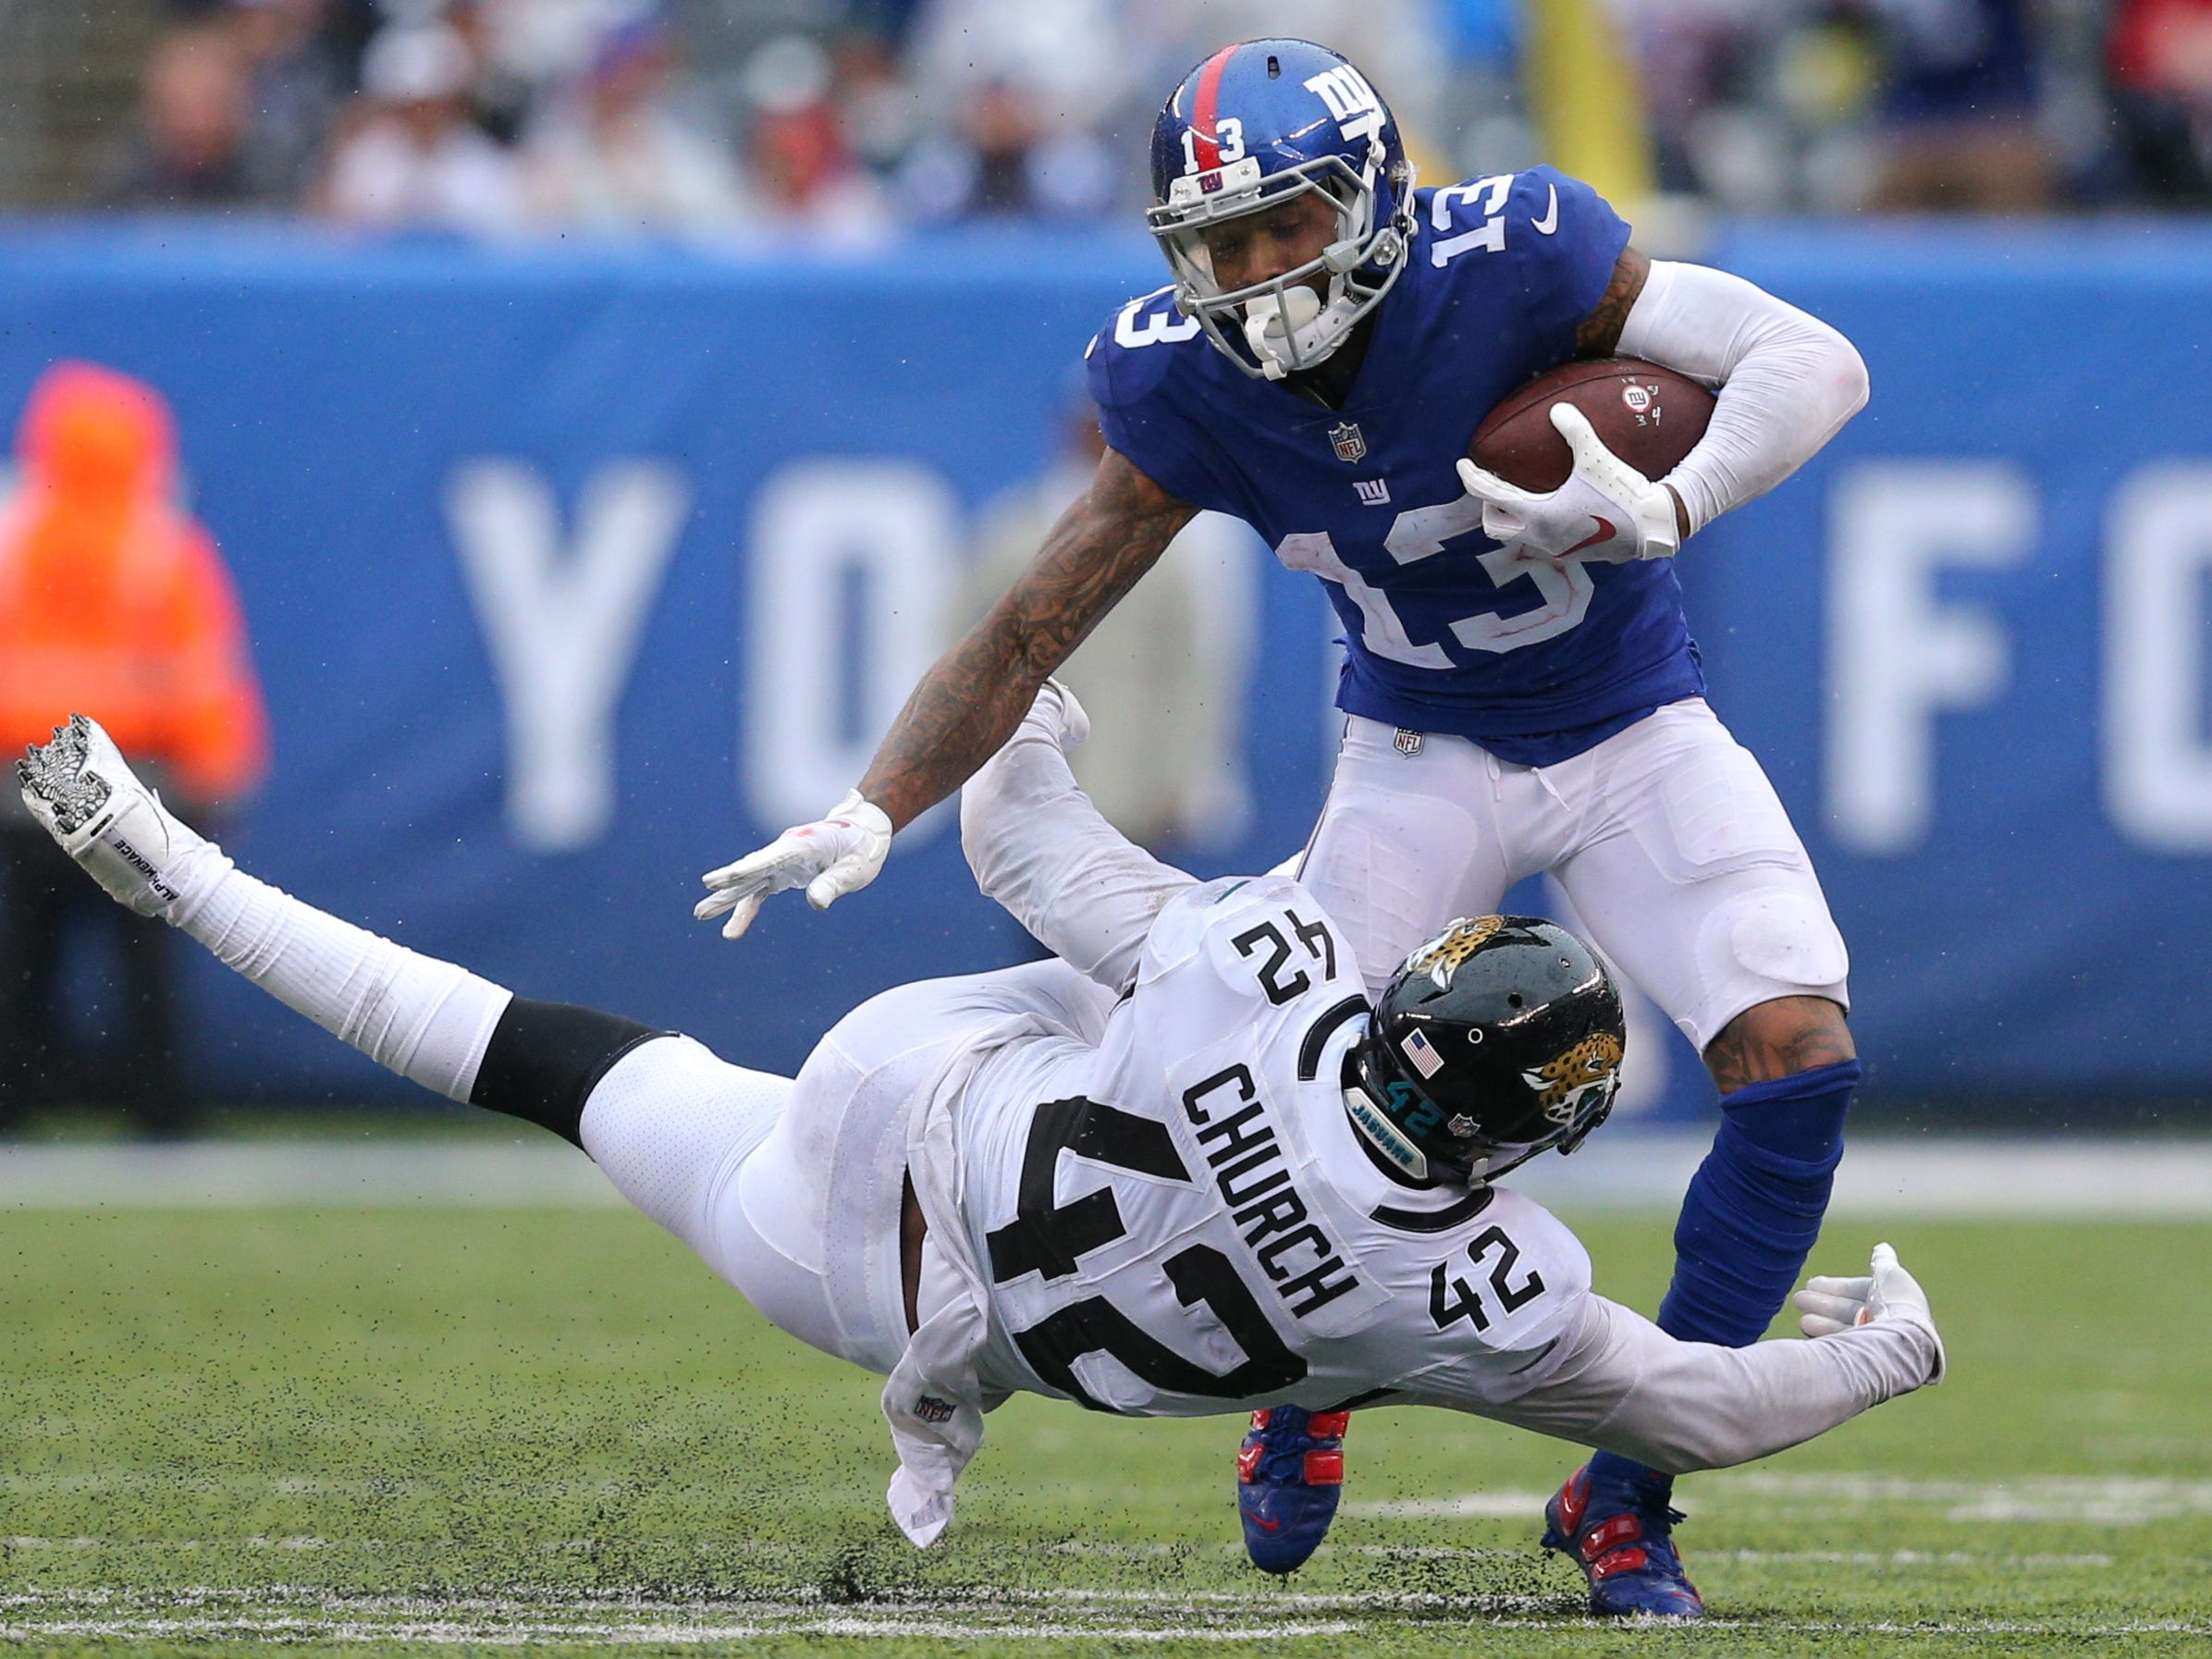 19. Giants (20): On one hand, Saquon Barkley and Odell Beckham combined for 238 yards ... on other hand, rest of offense combined for a mere 86 more.